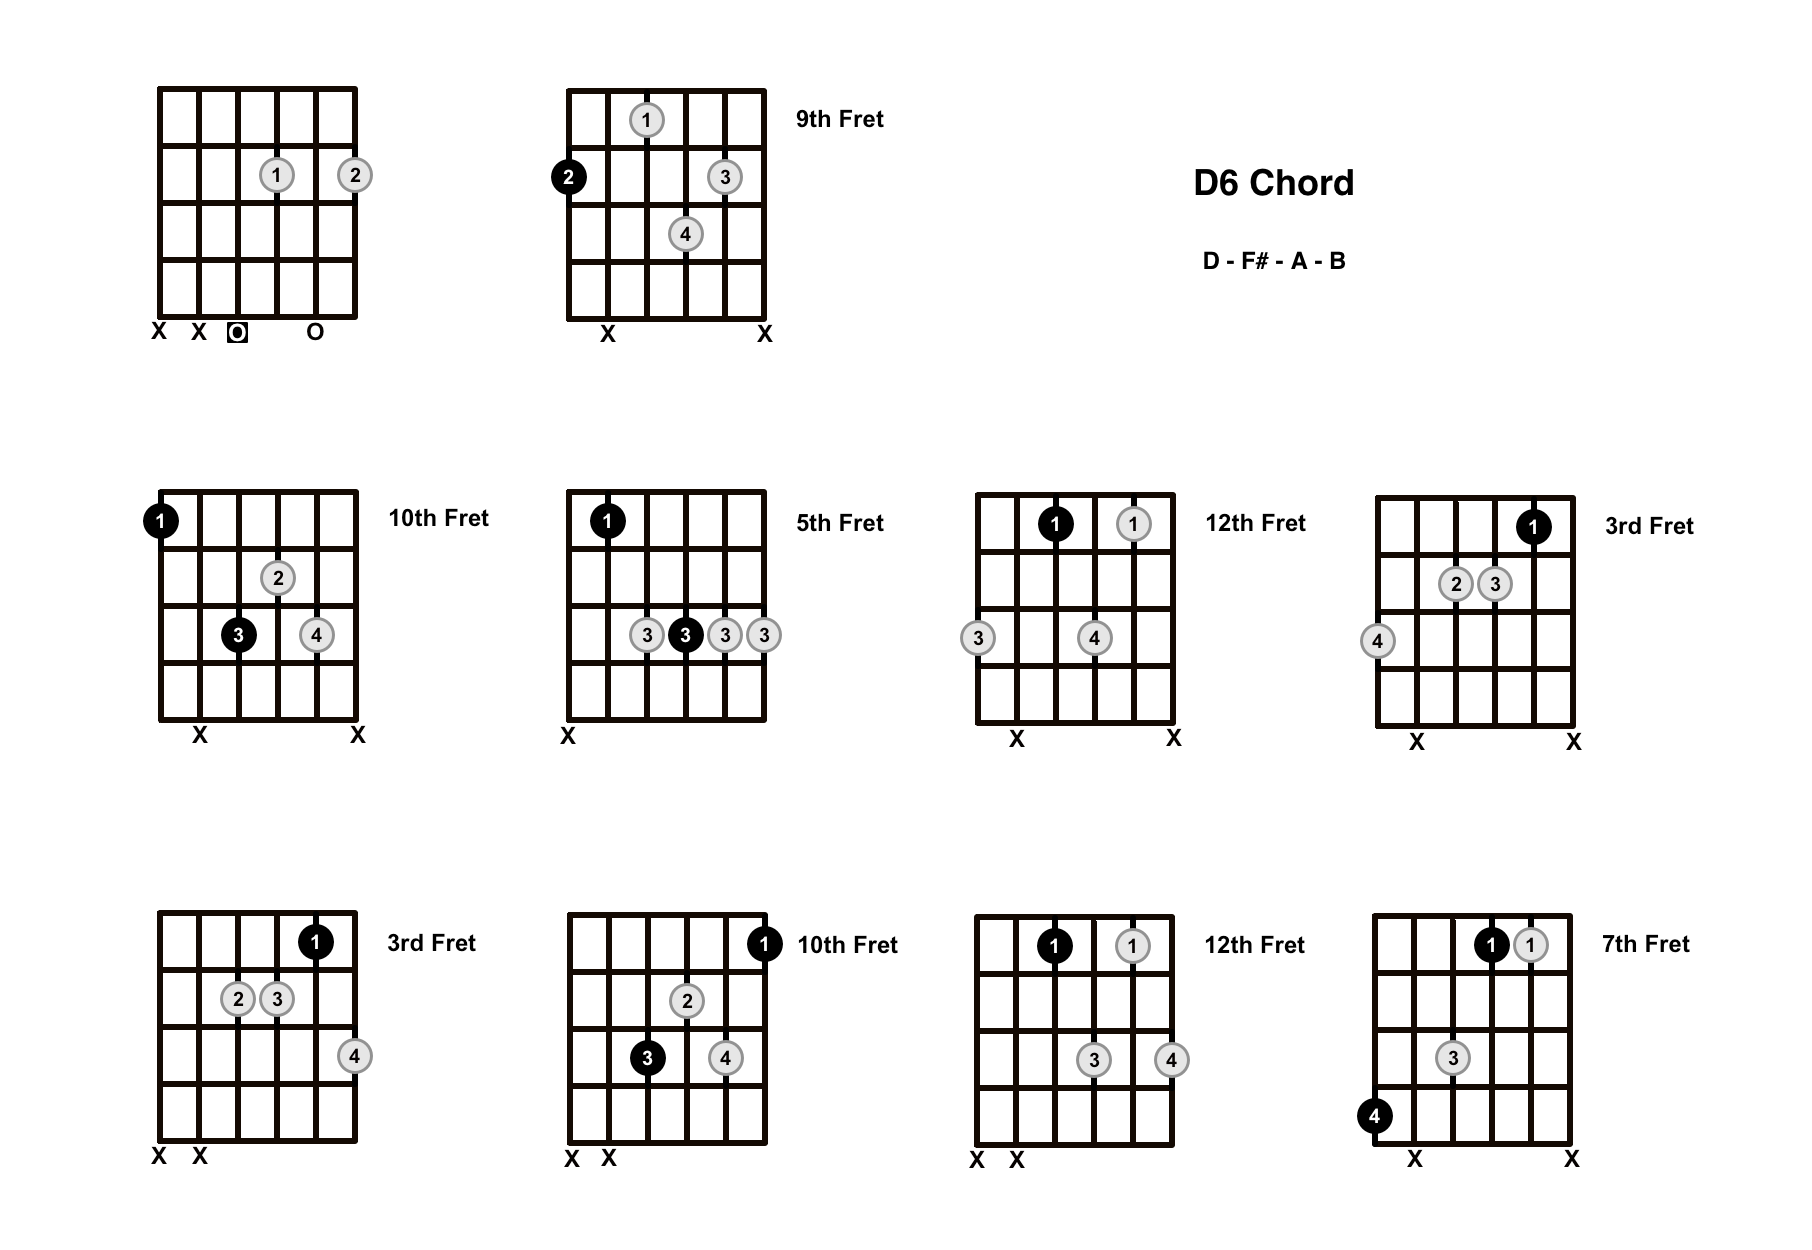 D6 Chord On The Guitar (D Major 6) – Diagrams, Finger Positions and Theory